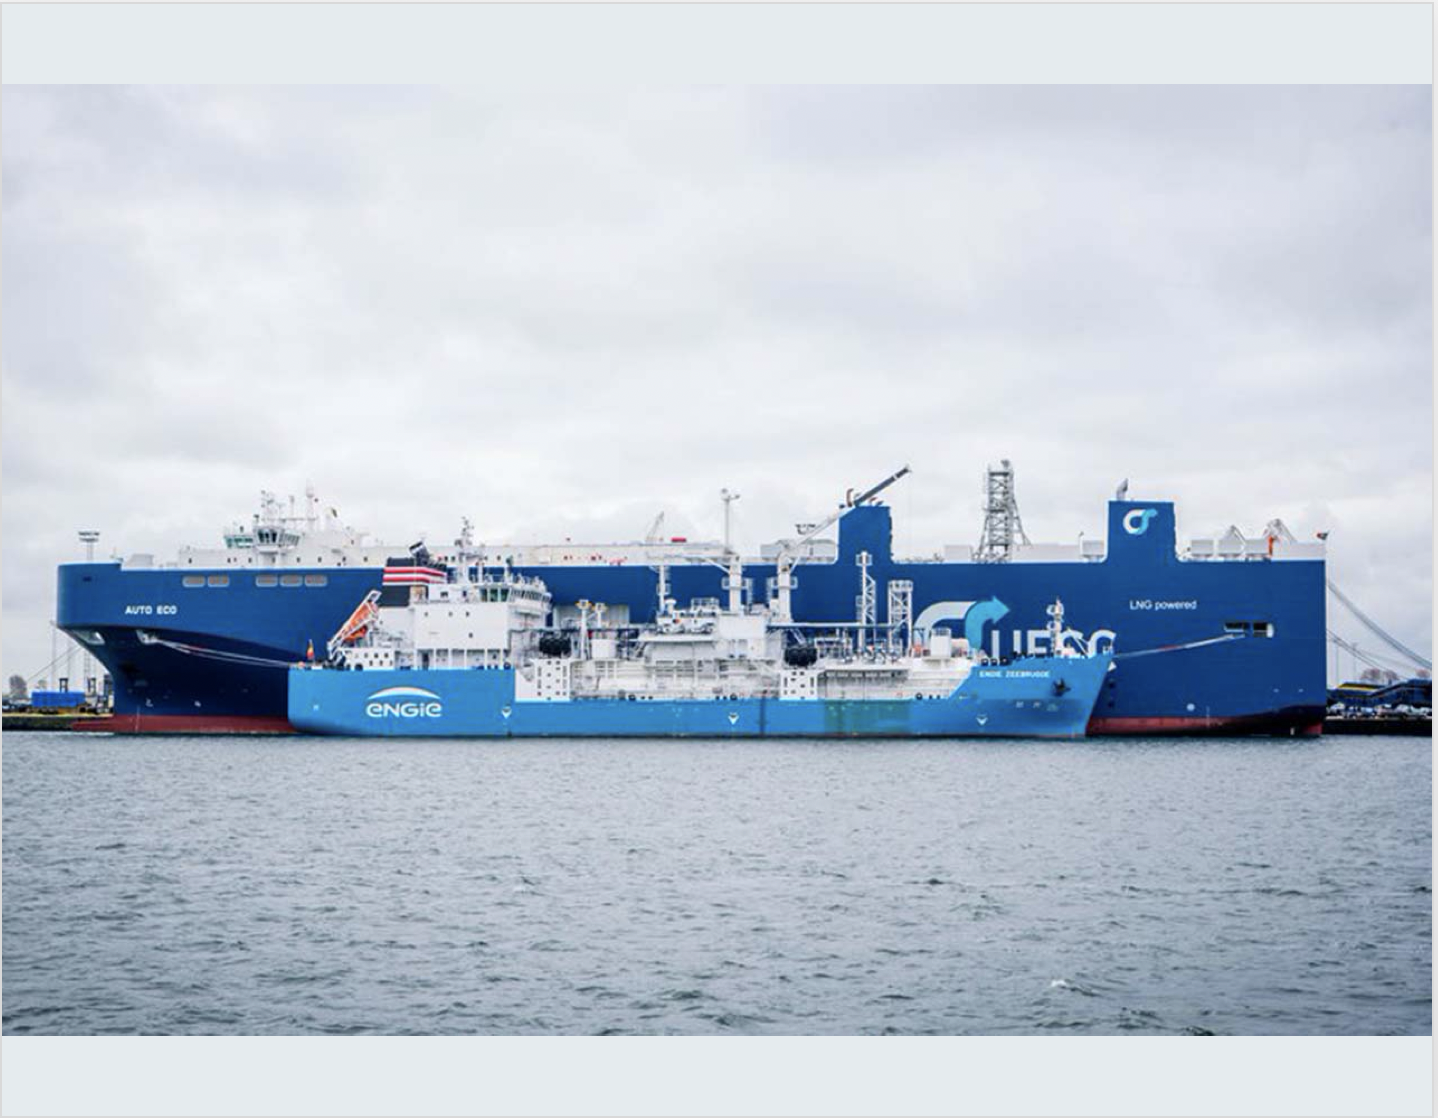 NYK assumes full control of former JV LNG bunkering company Marine LNG Zeebrugge